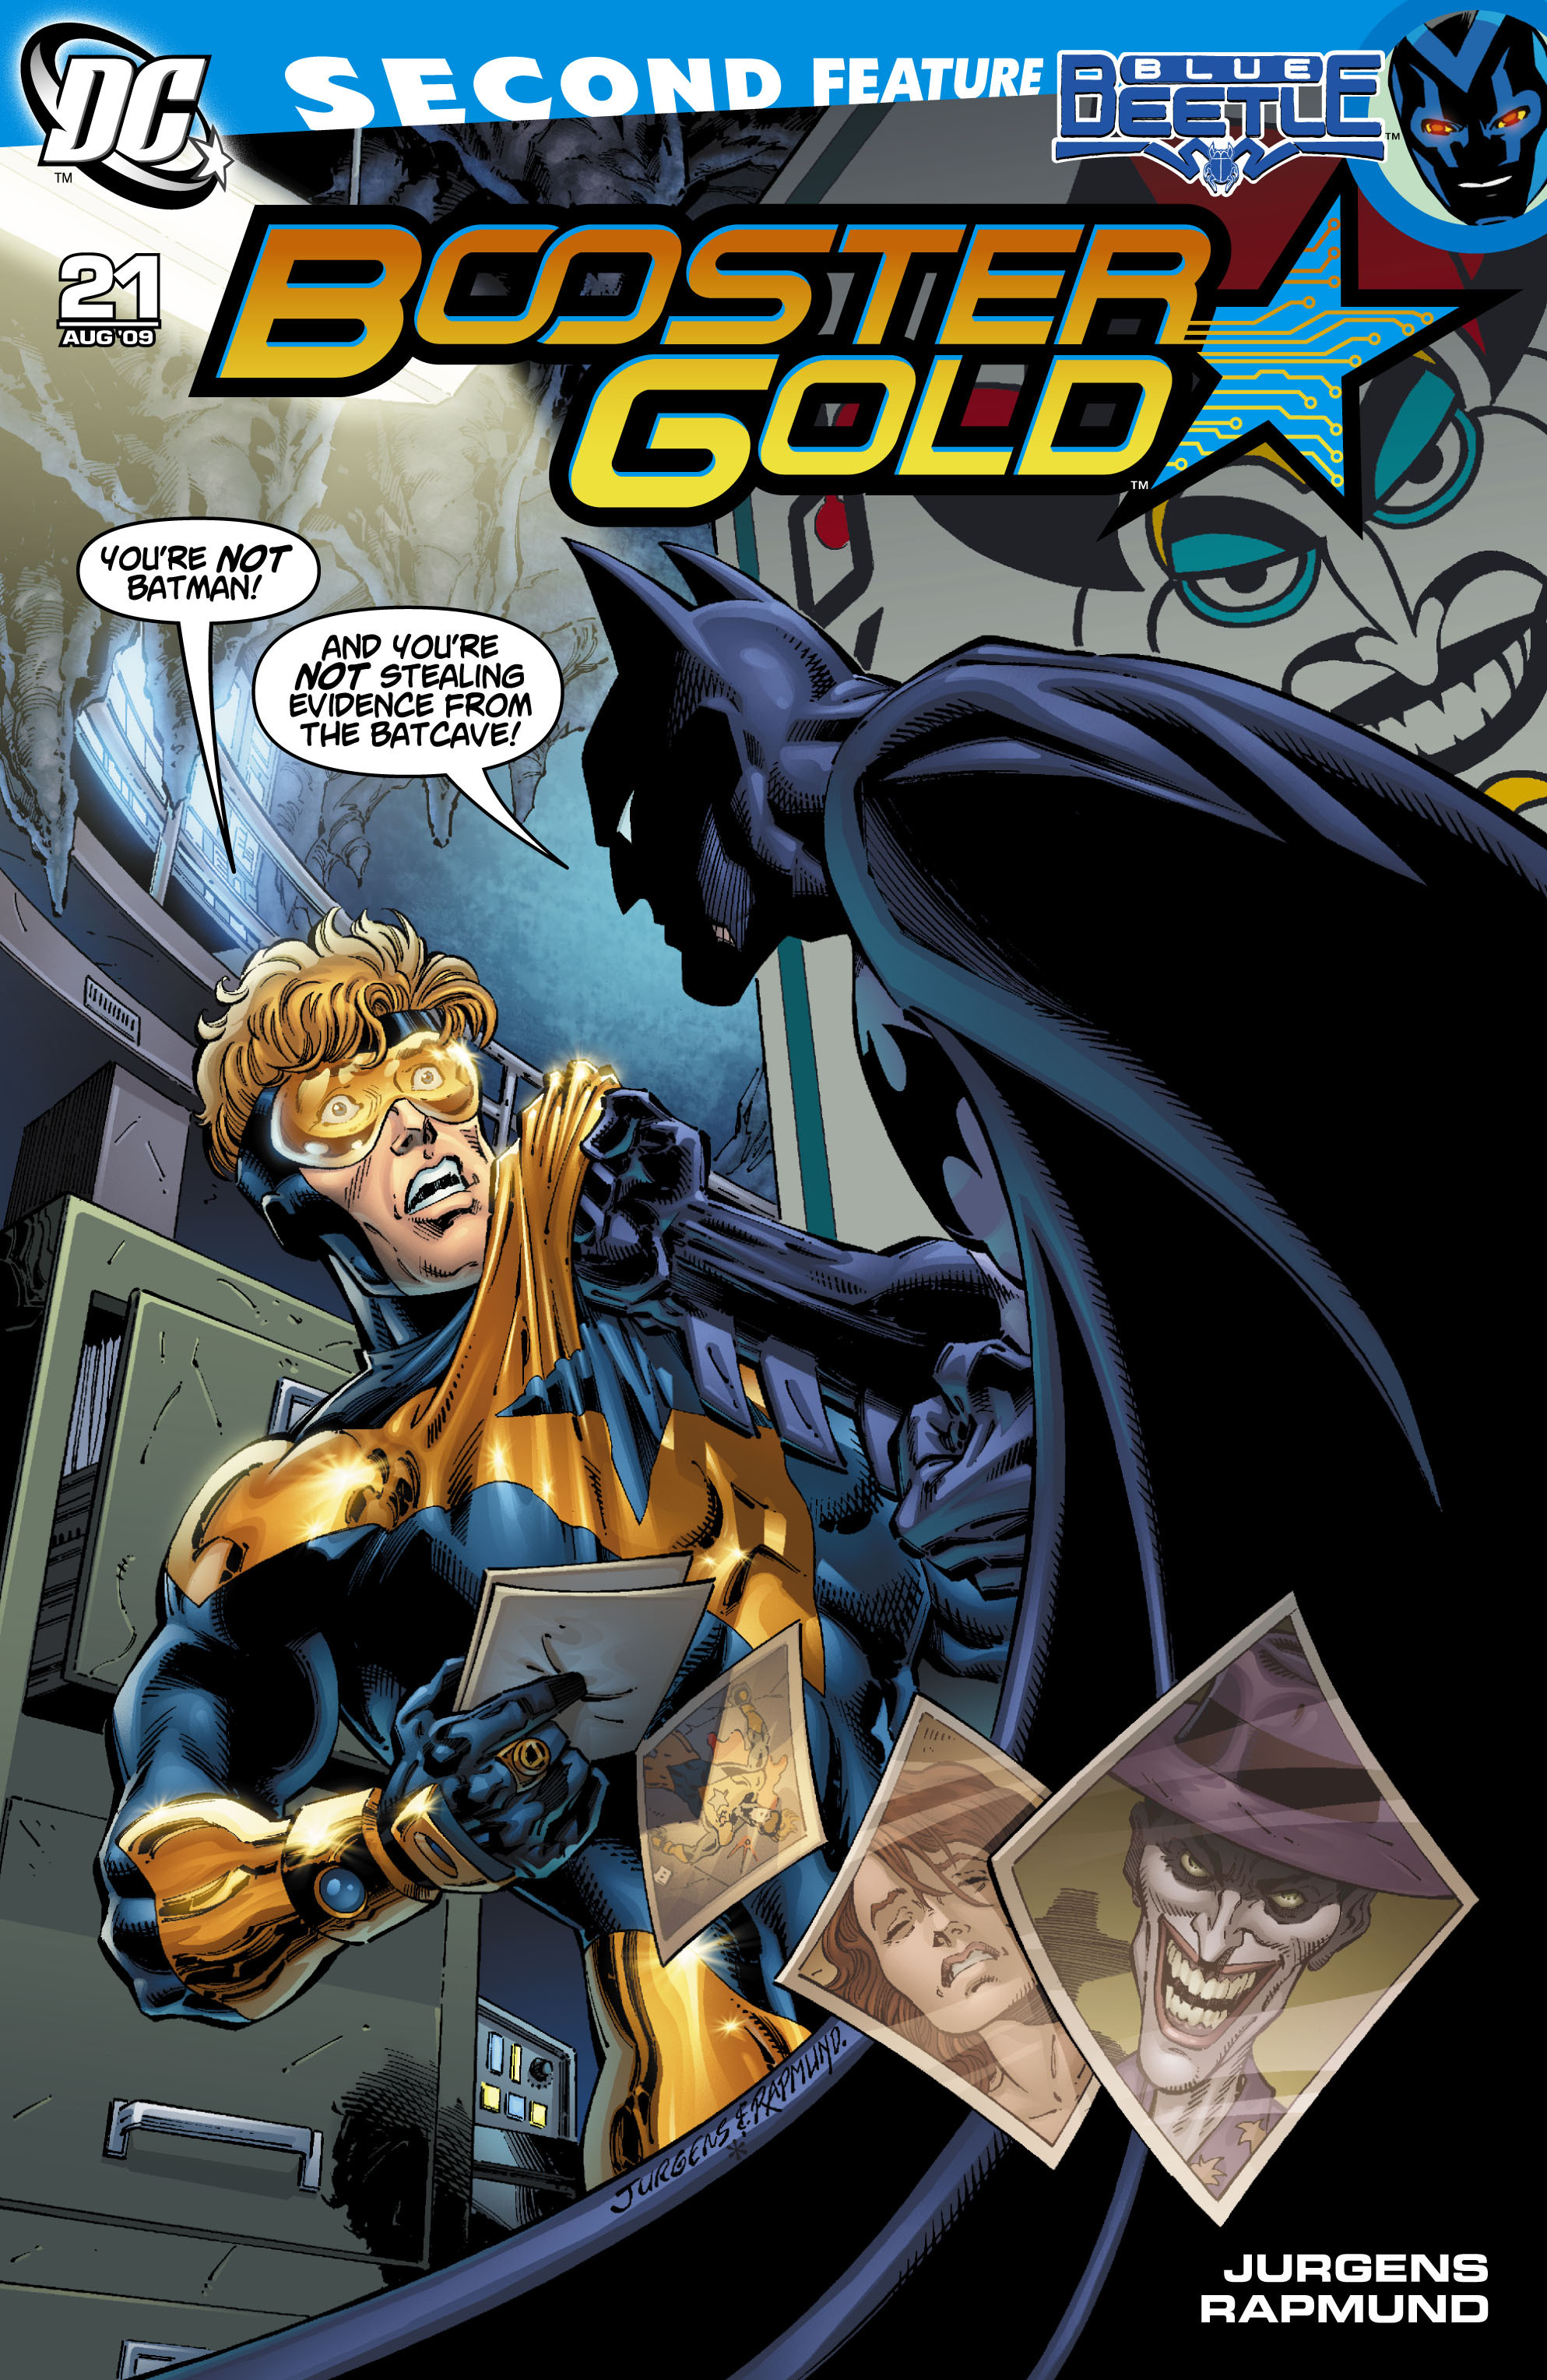 Booster Gold 2007 Issue 21